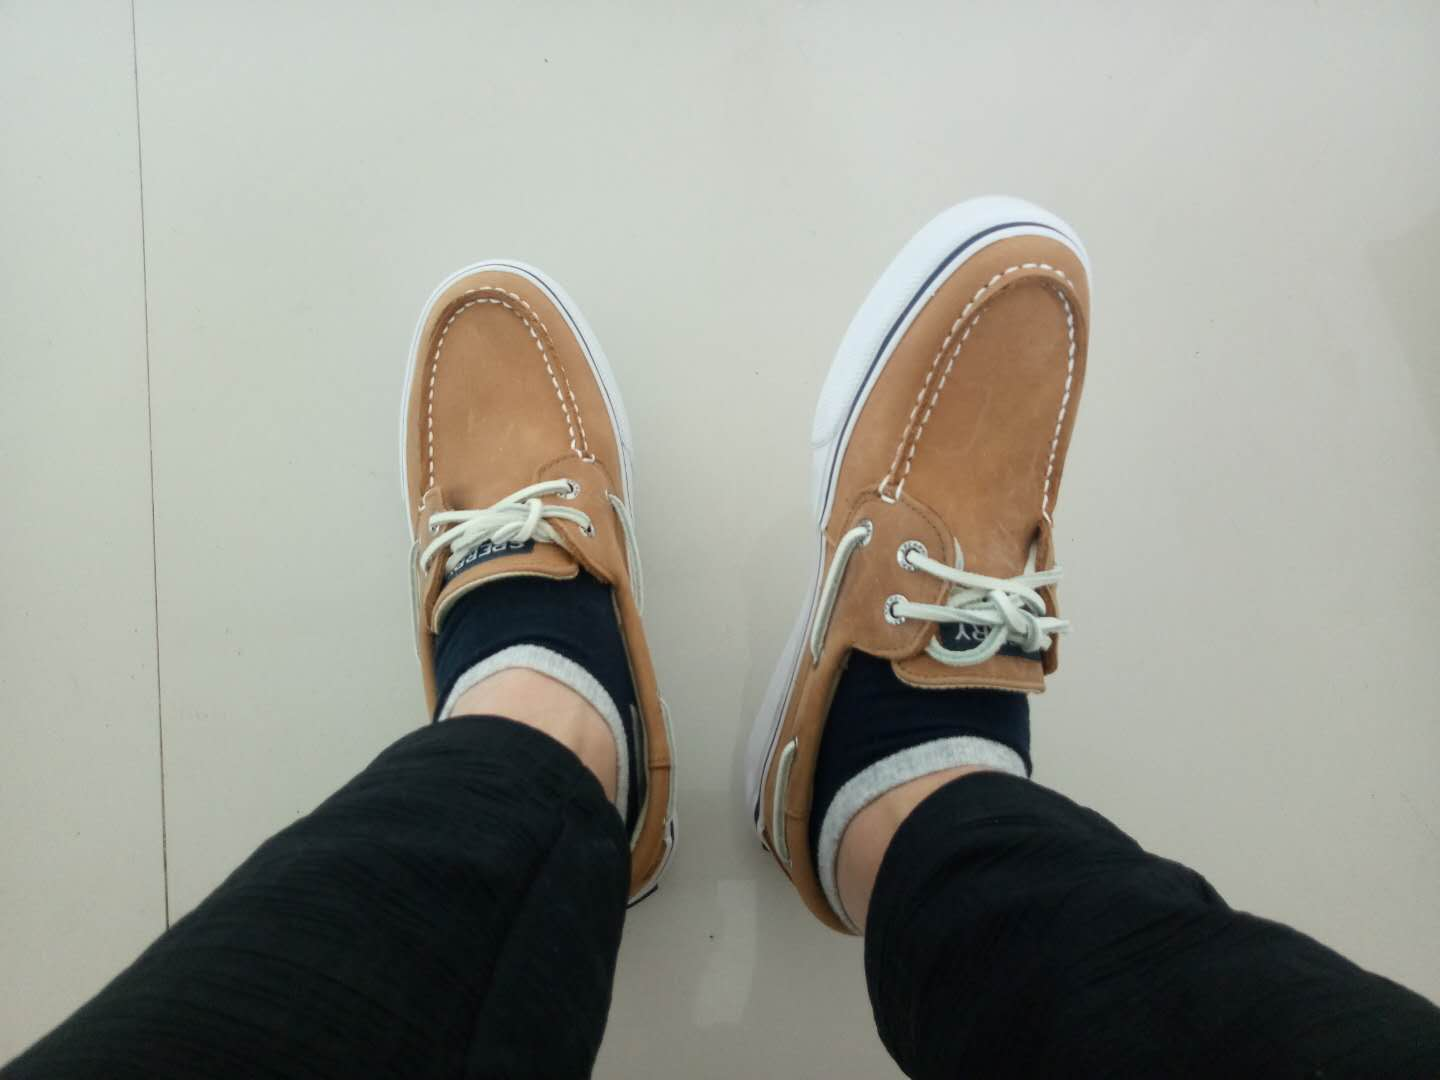 Sperry American tide brand cowhide sailing shoes British leisure low top fashion versatile round tie coconut sale